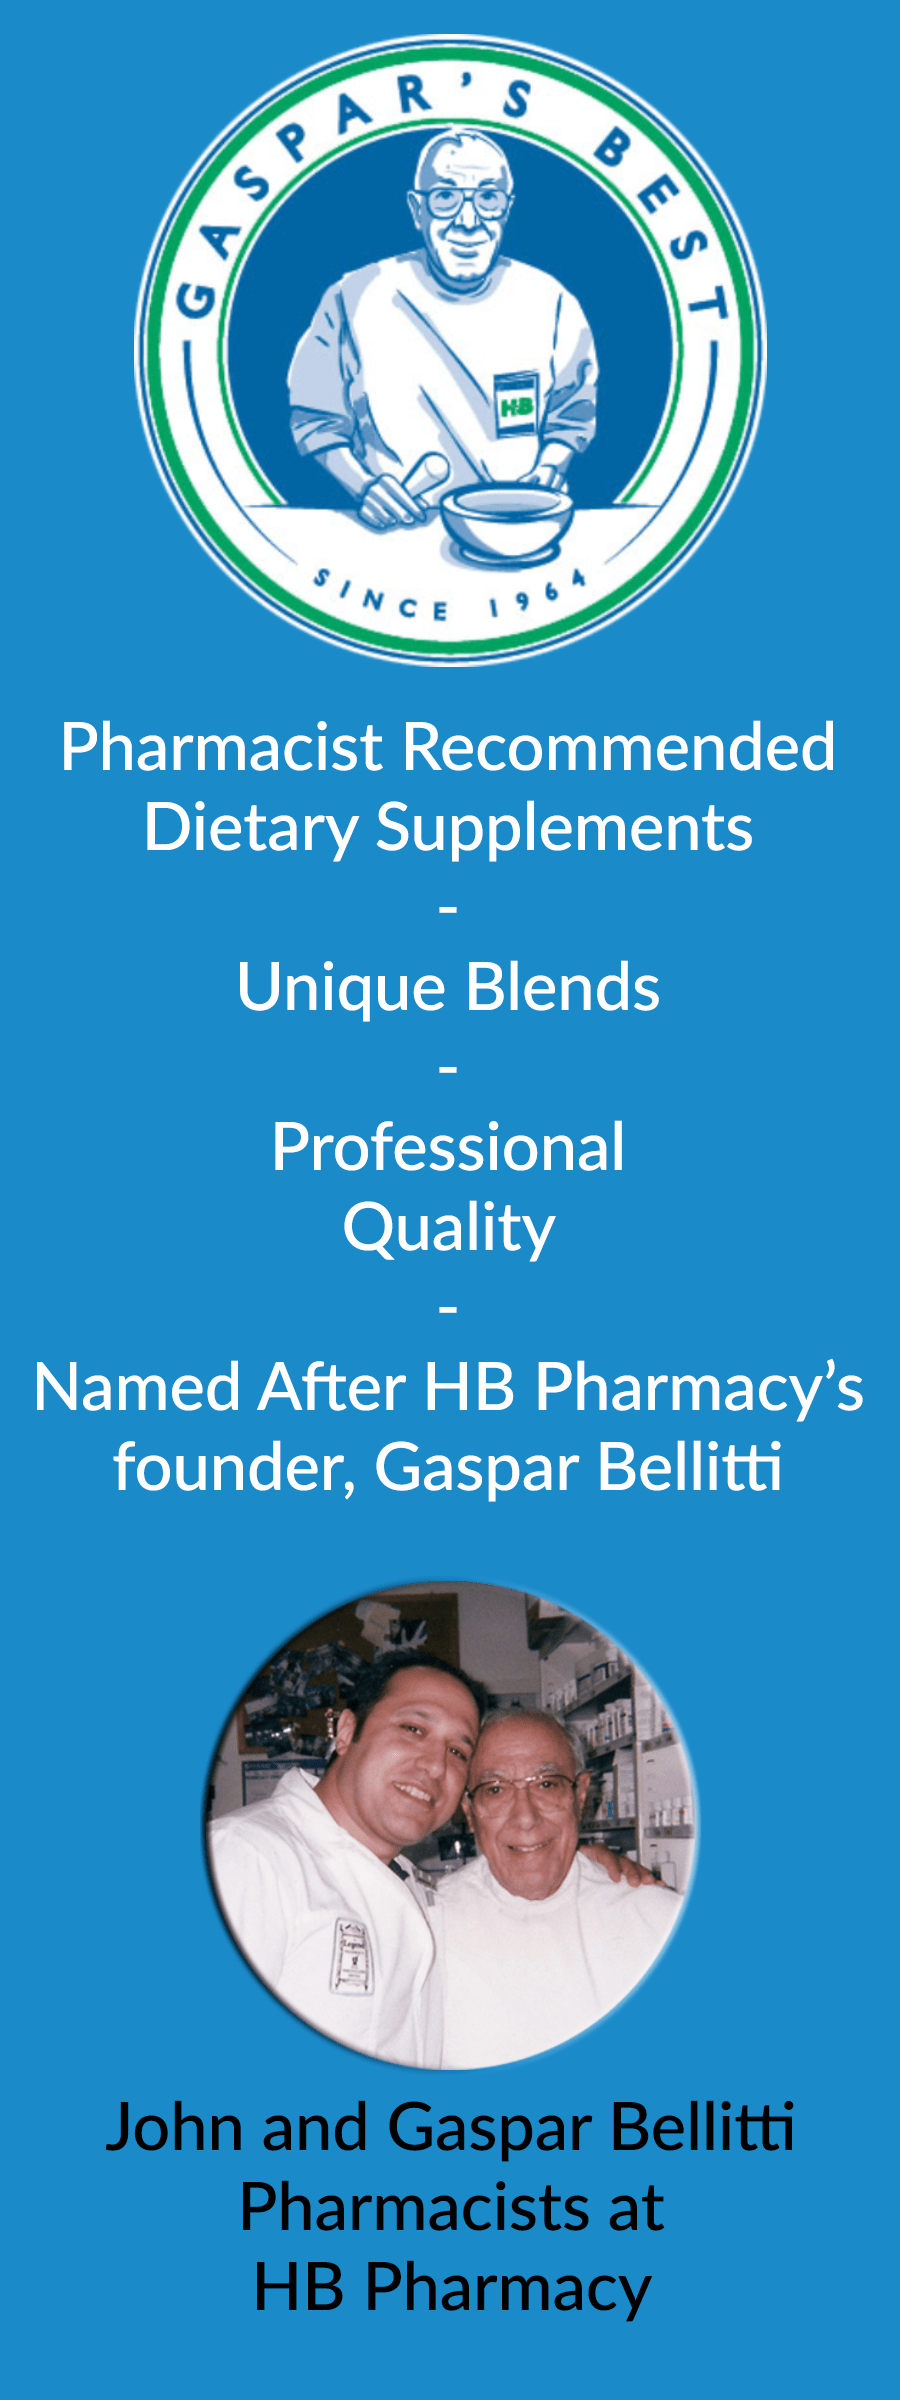 Gaspar's Best Supplements - Unique Blends | Professional Quality | A Family You Can Trust